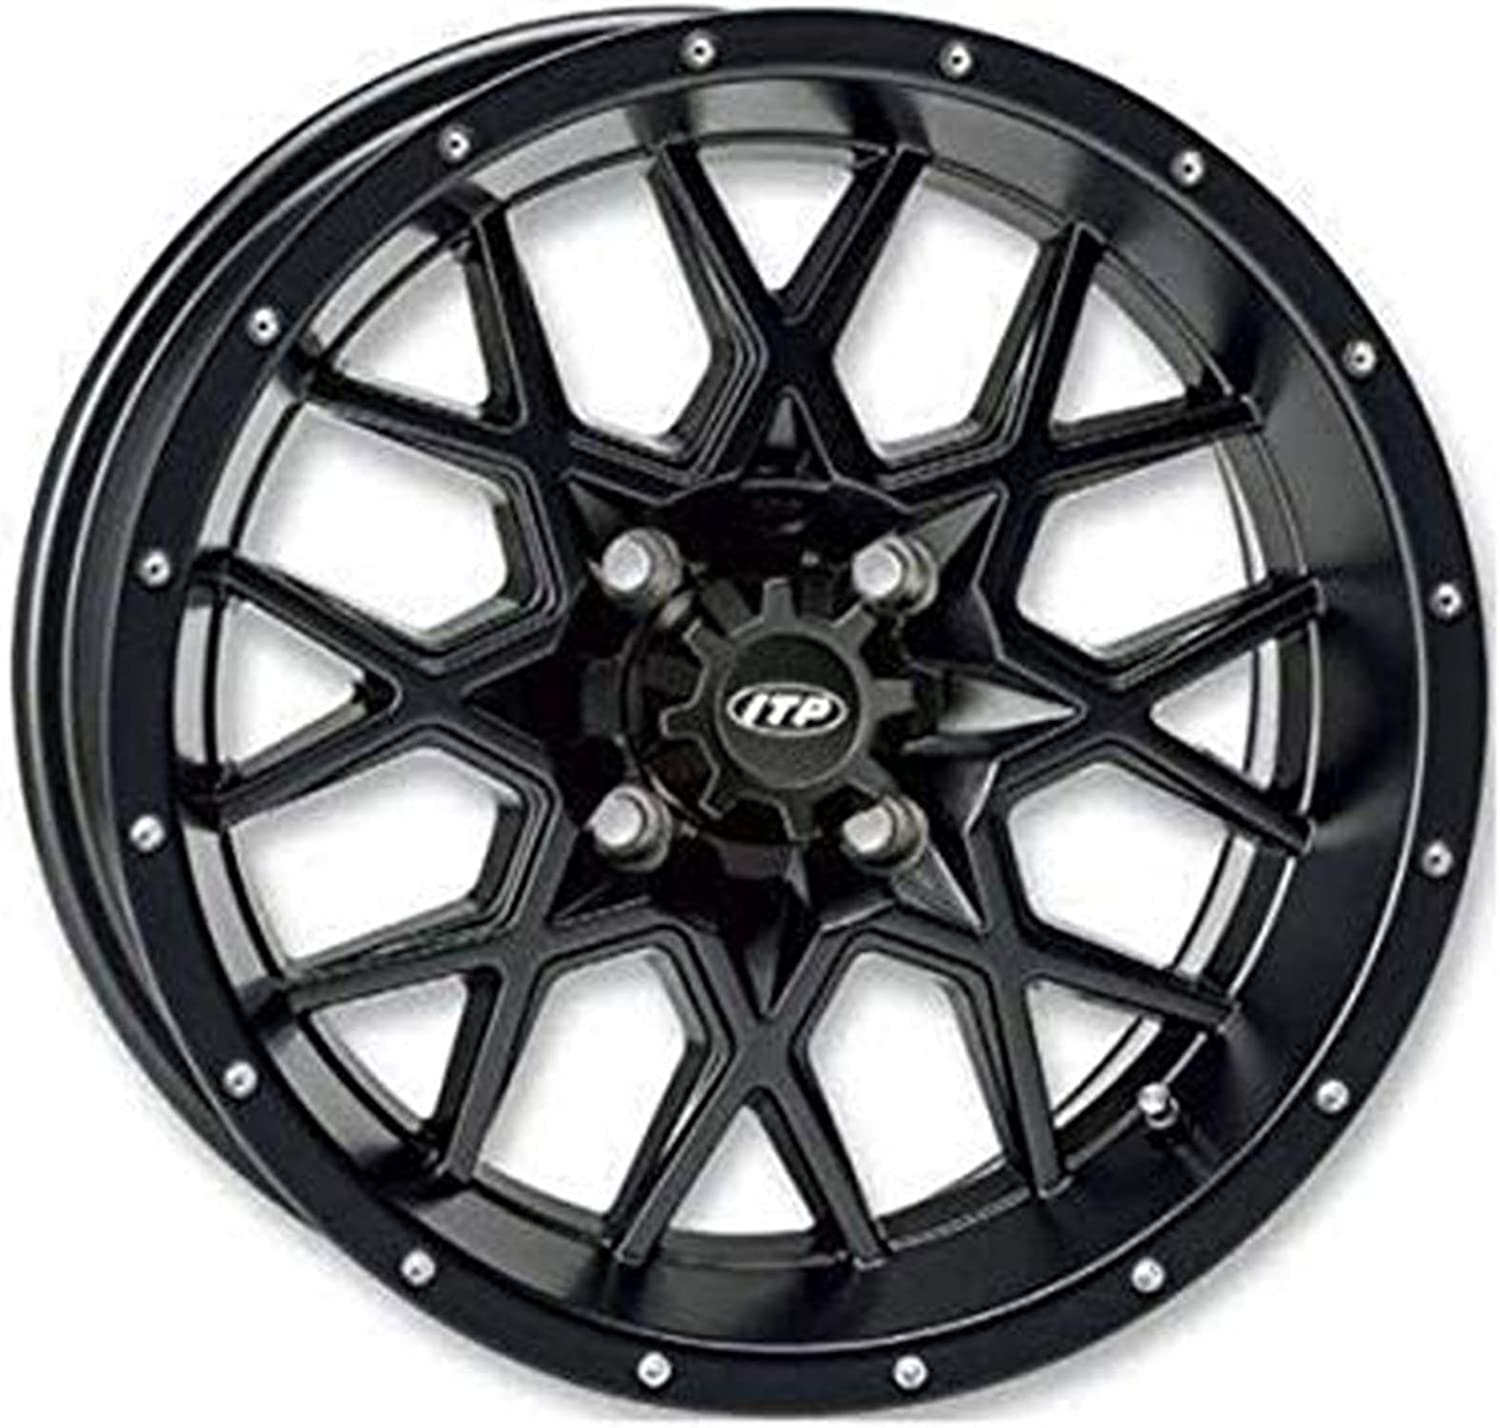 Hurricane Wheel - 16x7-5+2 Special Campaign Offset 4 Matte 201 Black 115 New color Fits